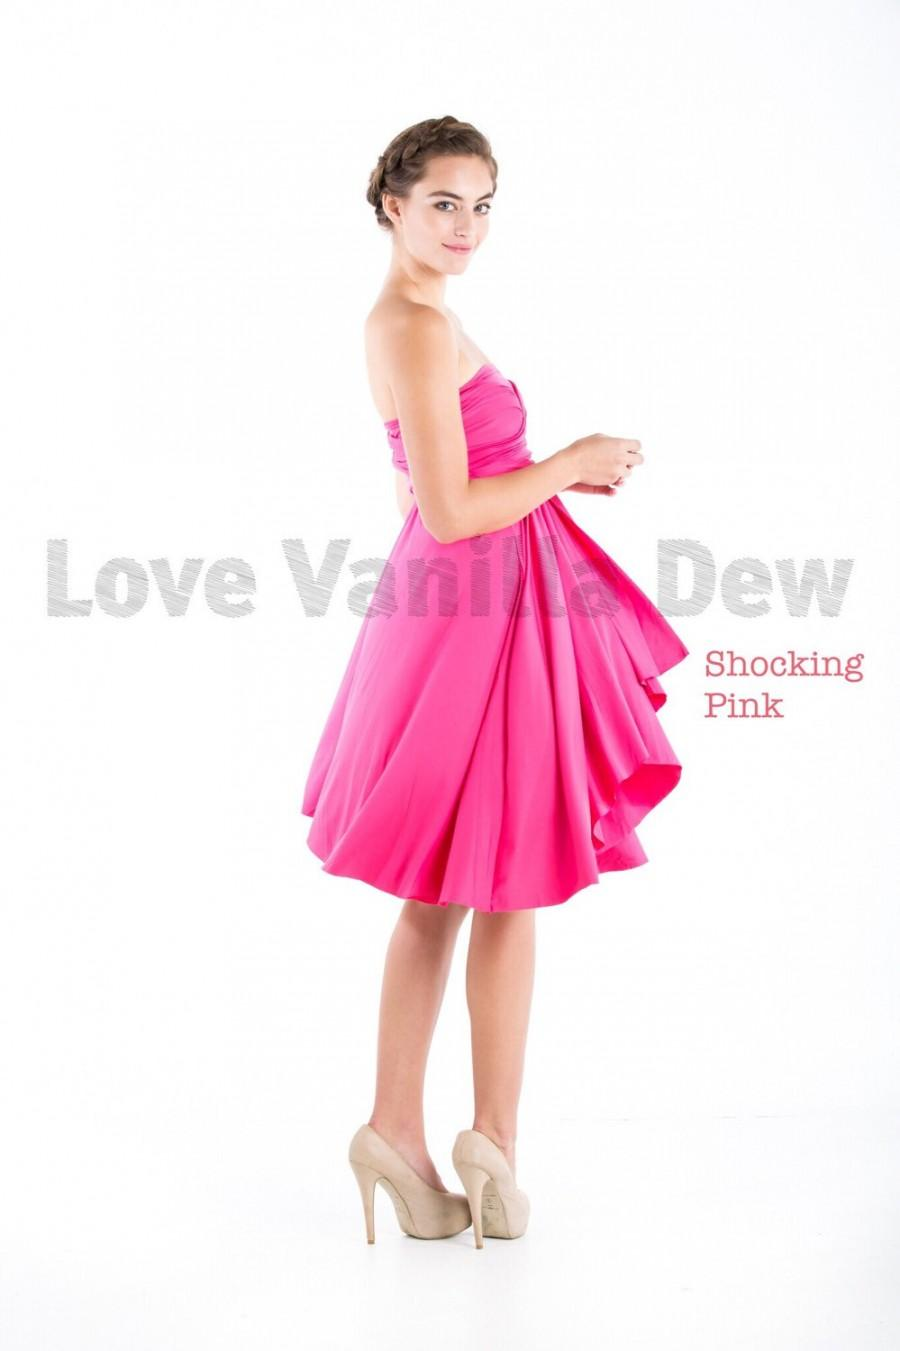 69dace00979d Bridesmaid Dress Infinity Dress Shocking Pink Knee Length Wrap Convertible  Dress Wedding Dress